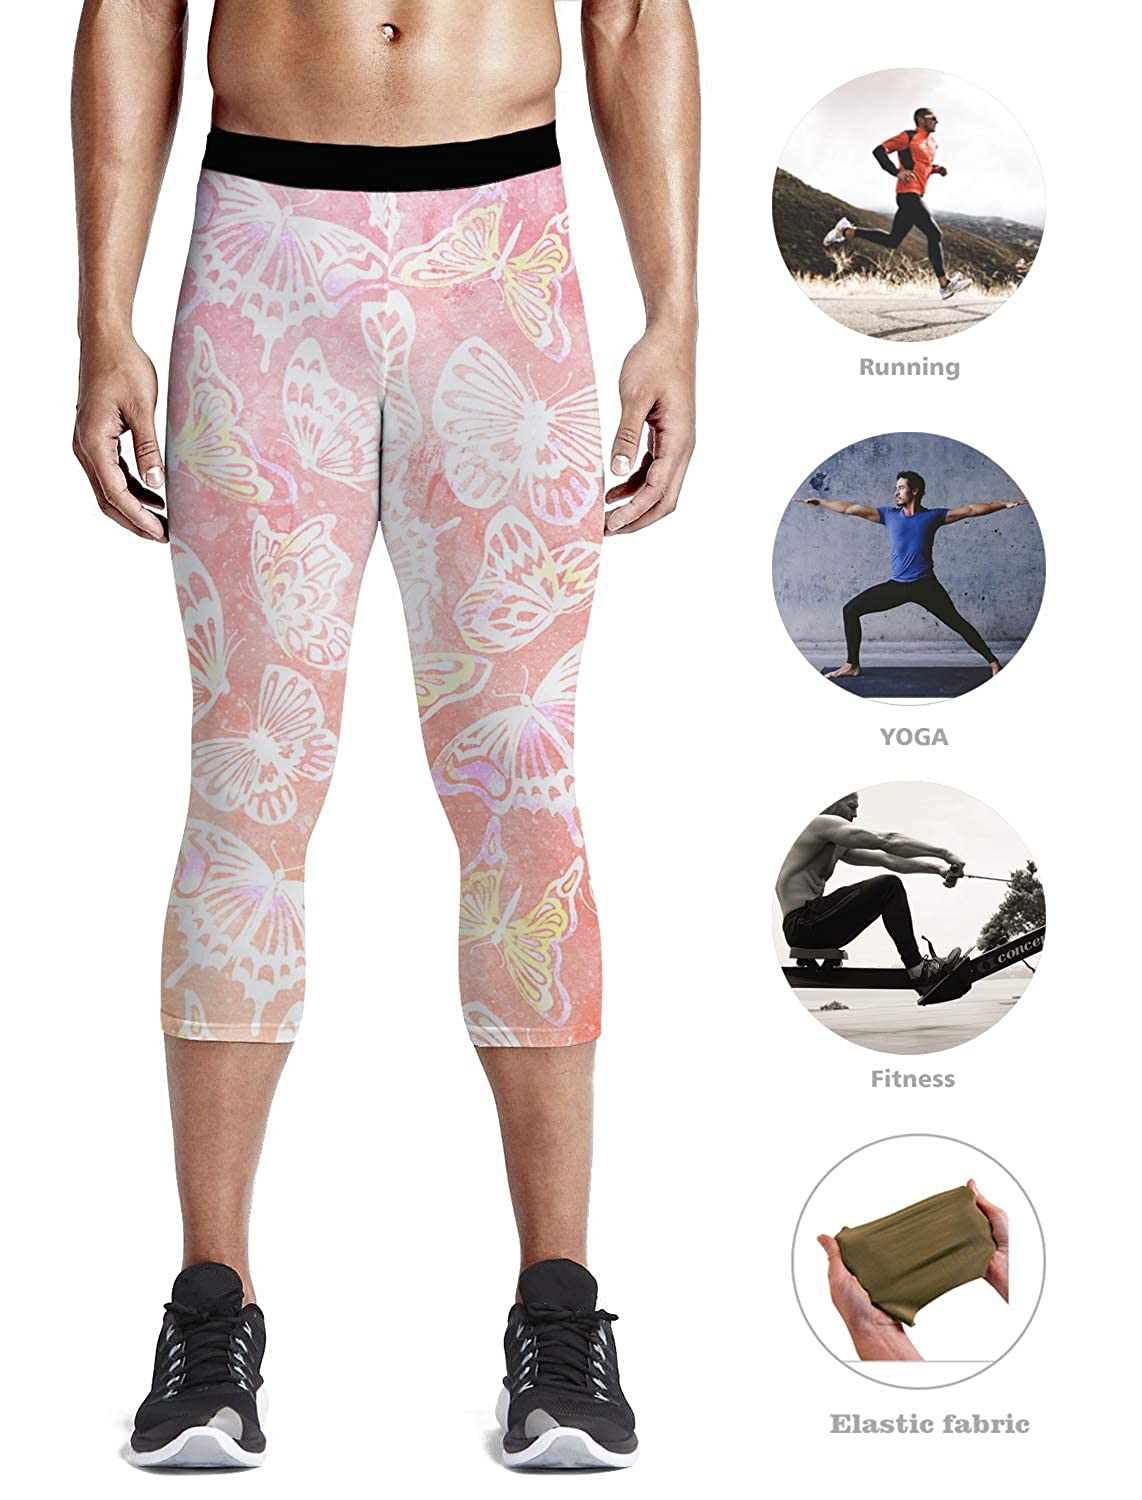 63583b43693d1 Amazon.com: Custom Men Leggings 3/4 Capri Leggings Compression Dry Cool  Tights Pants for Gym, Basketball, Cycling, Yoga, Hiking Animal Theme  Beautiful ...